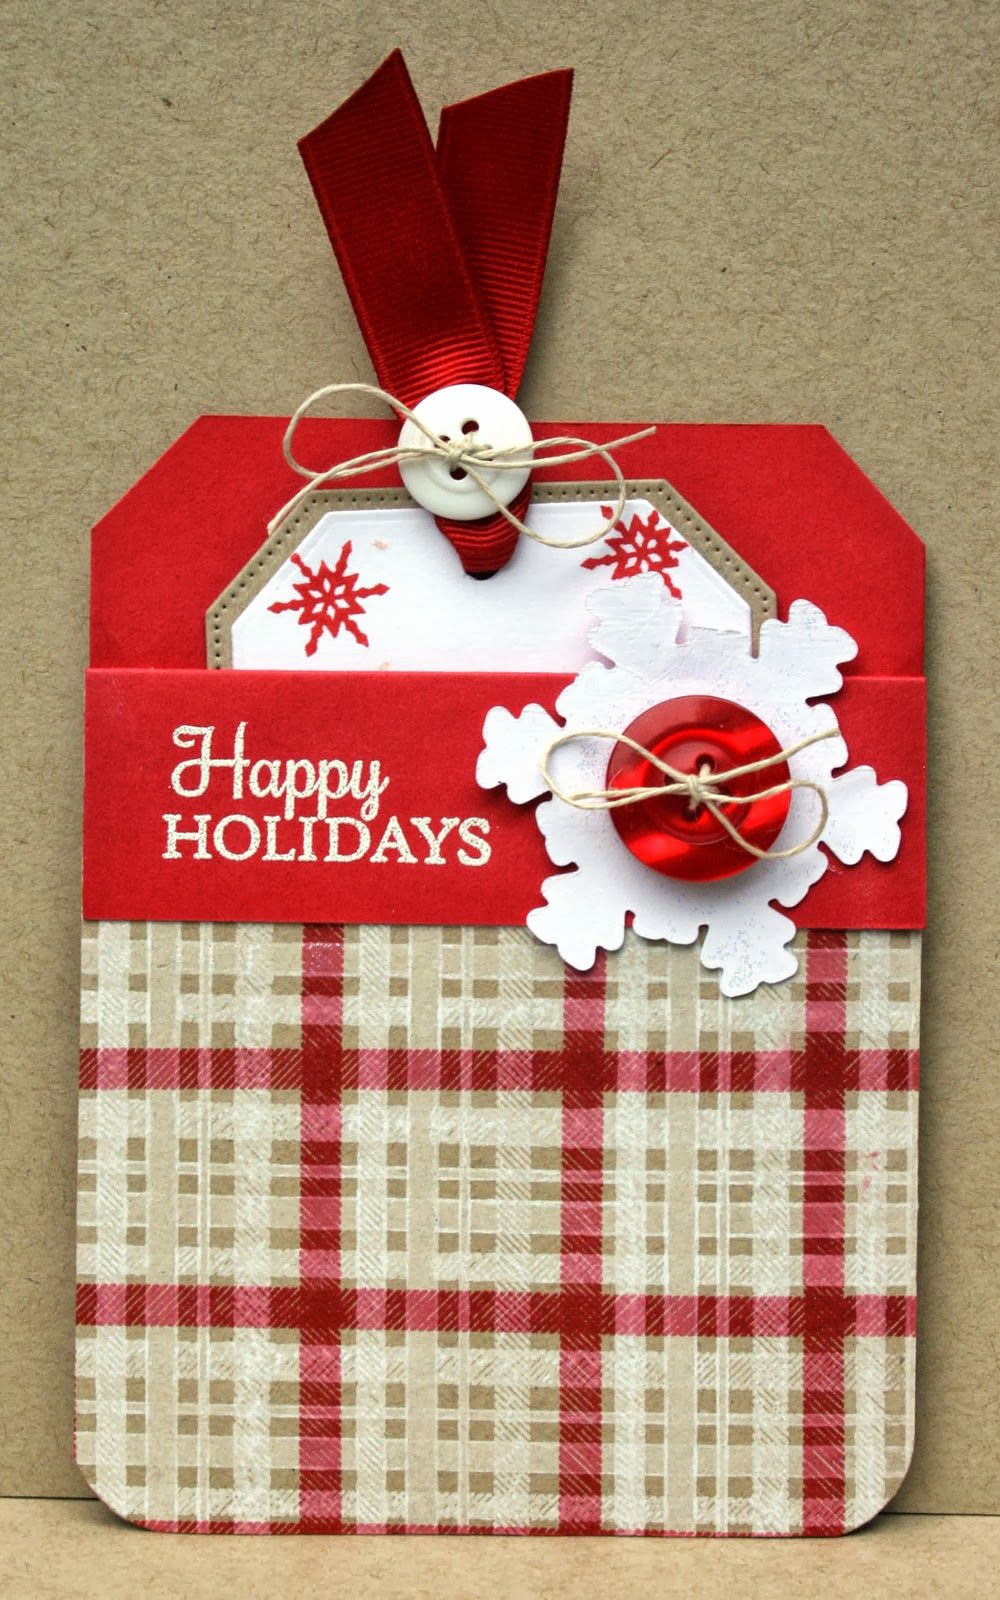 Paper Perfect Designs: Pocket Gift Card Holder Tutorial ...